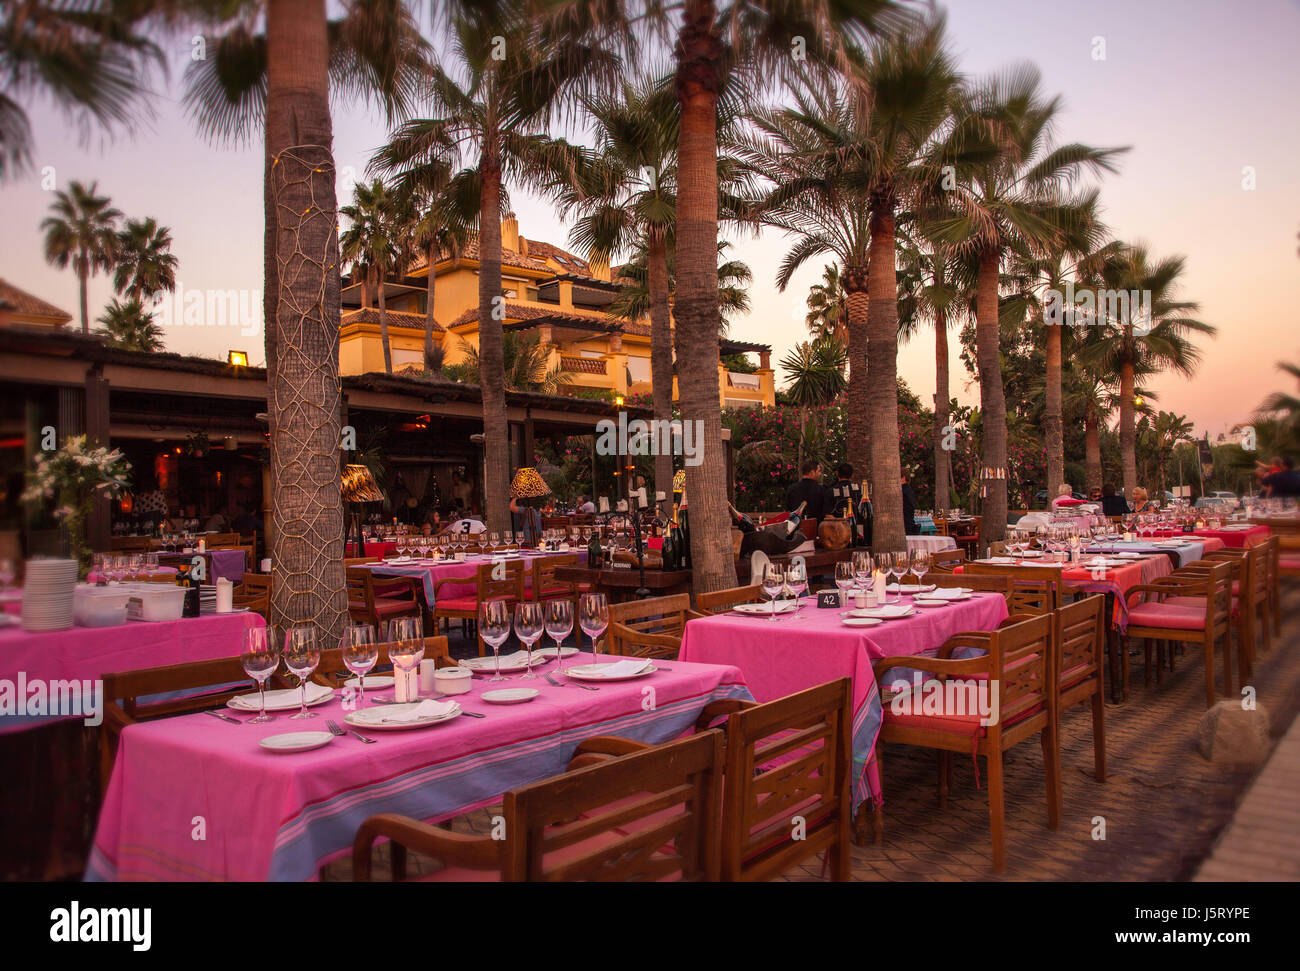 Trocadero Arena restaurant in Marbella, spain. - Stock Image